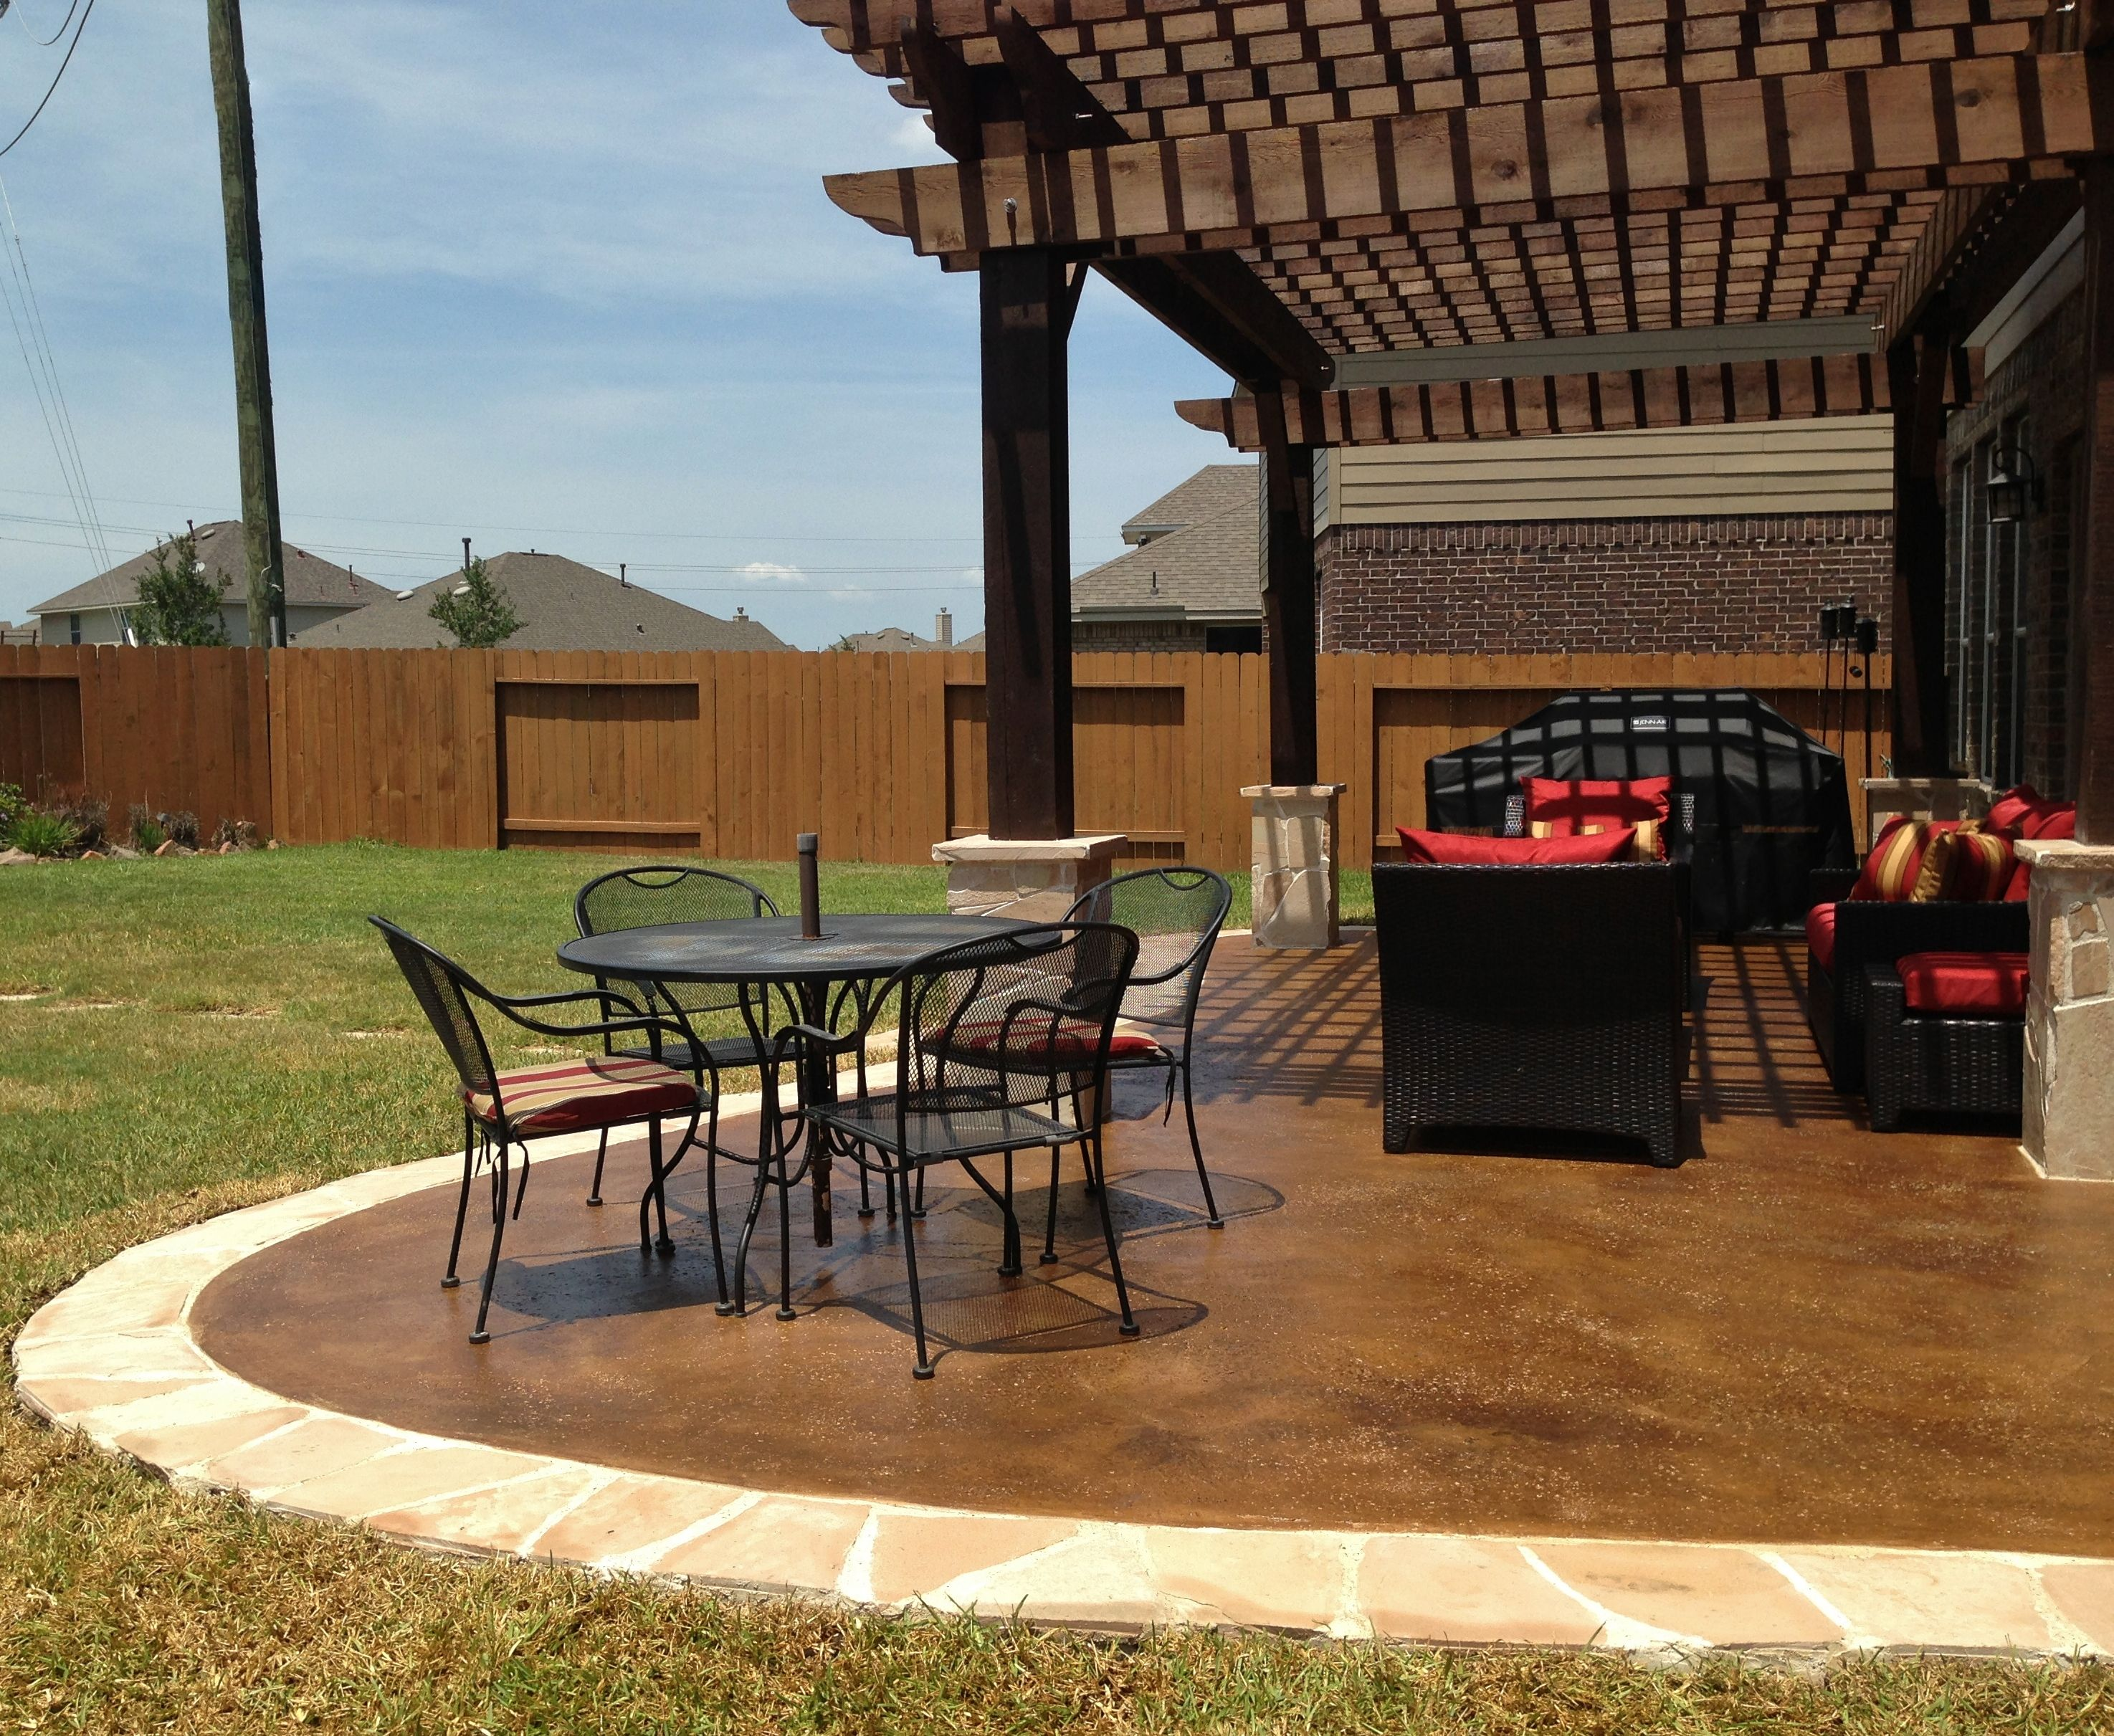 This Rustic Outdoor Patio Was Designed And Constructed By The Western Patio  Company In Spring,